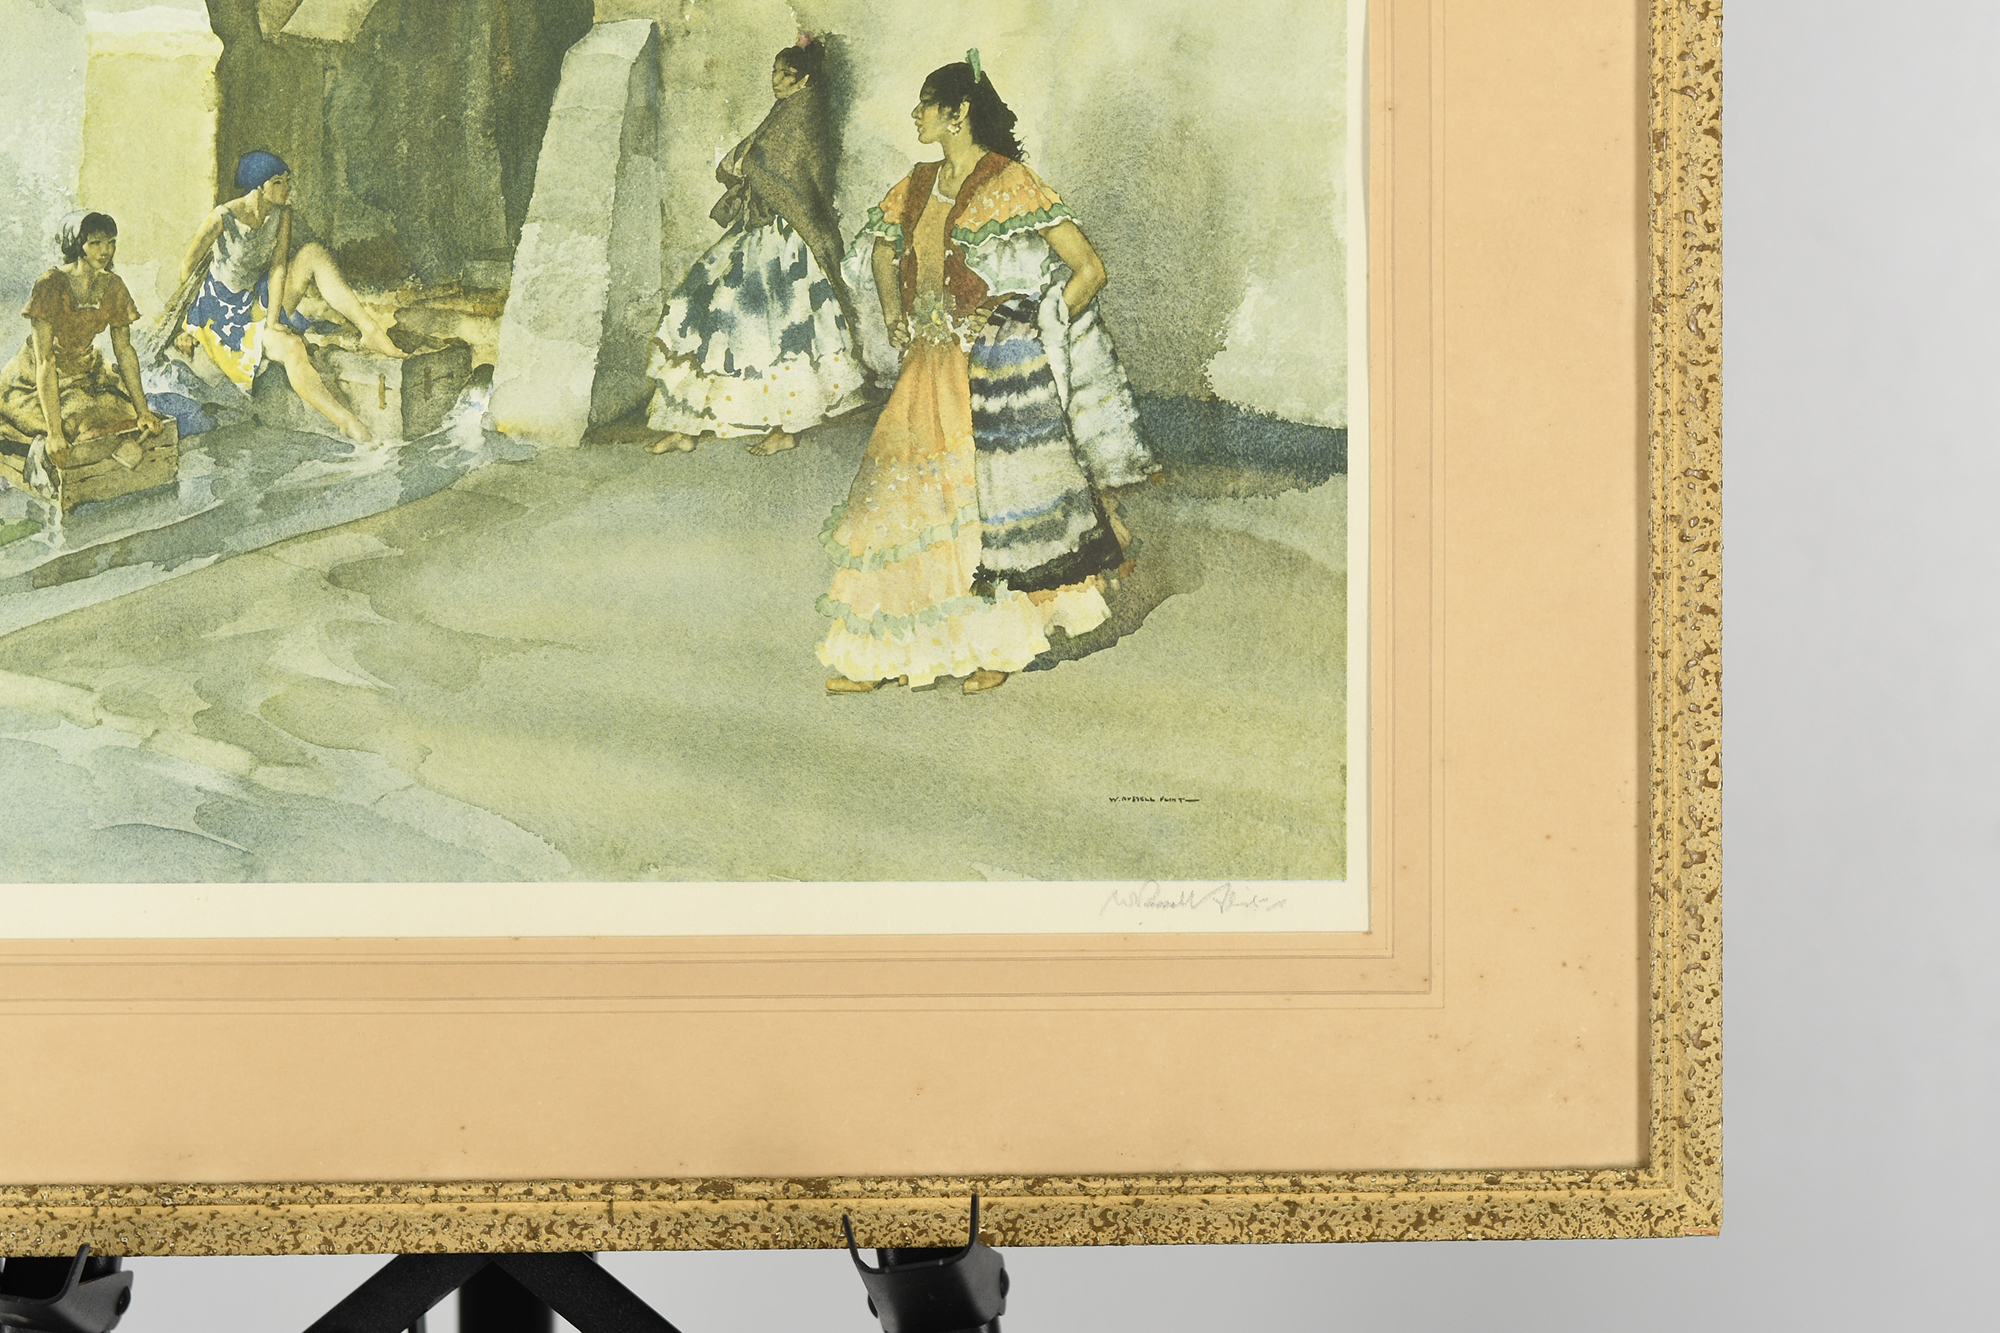 """Signed Limited Edition by Sir William Russell Flint """"Unwelcome Observers"""" - Image 5 of 8"""